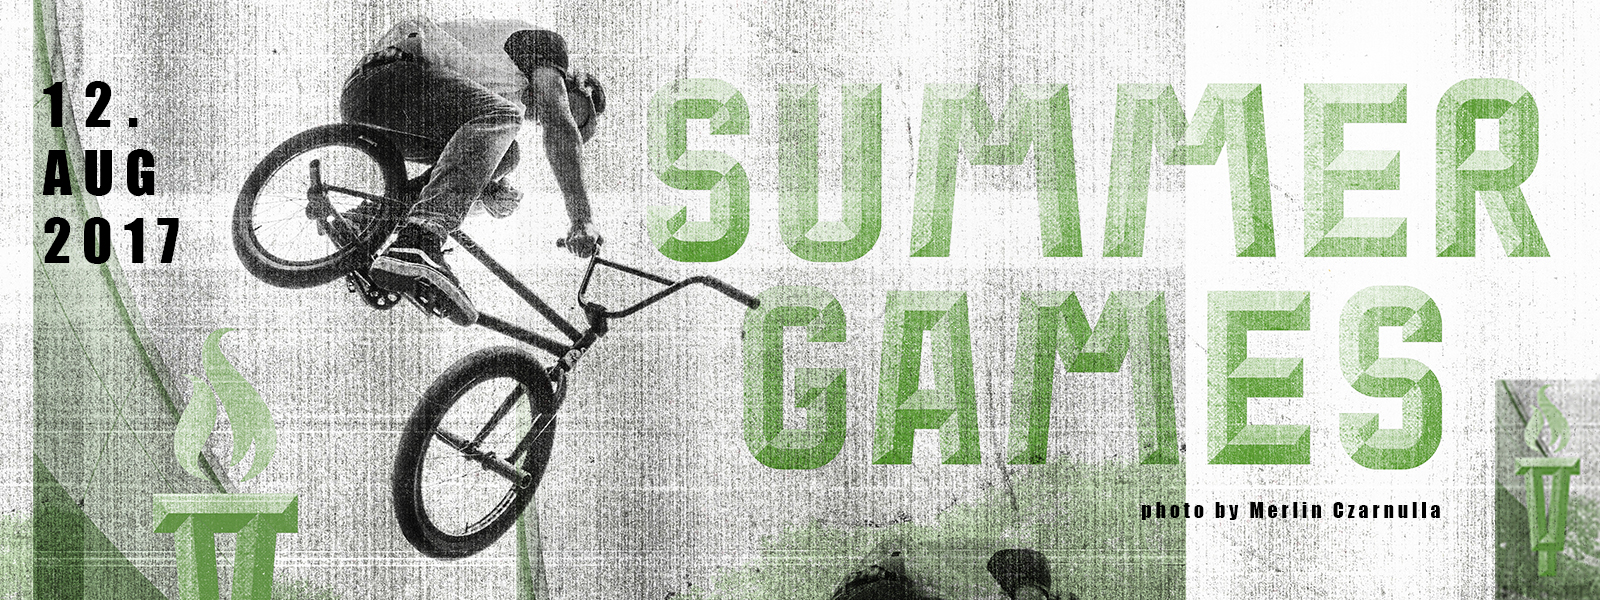 People's Store Summer Games - 12.08.2017